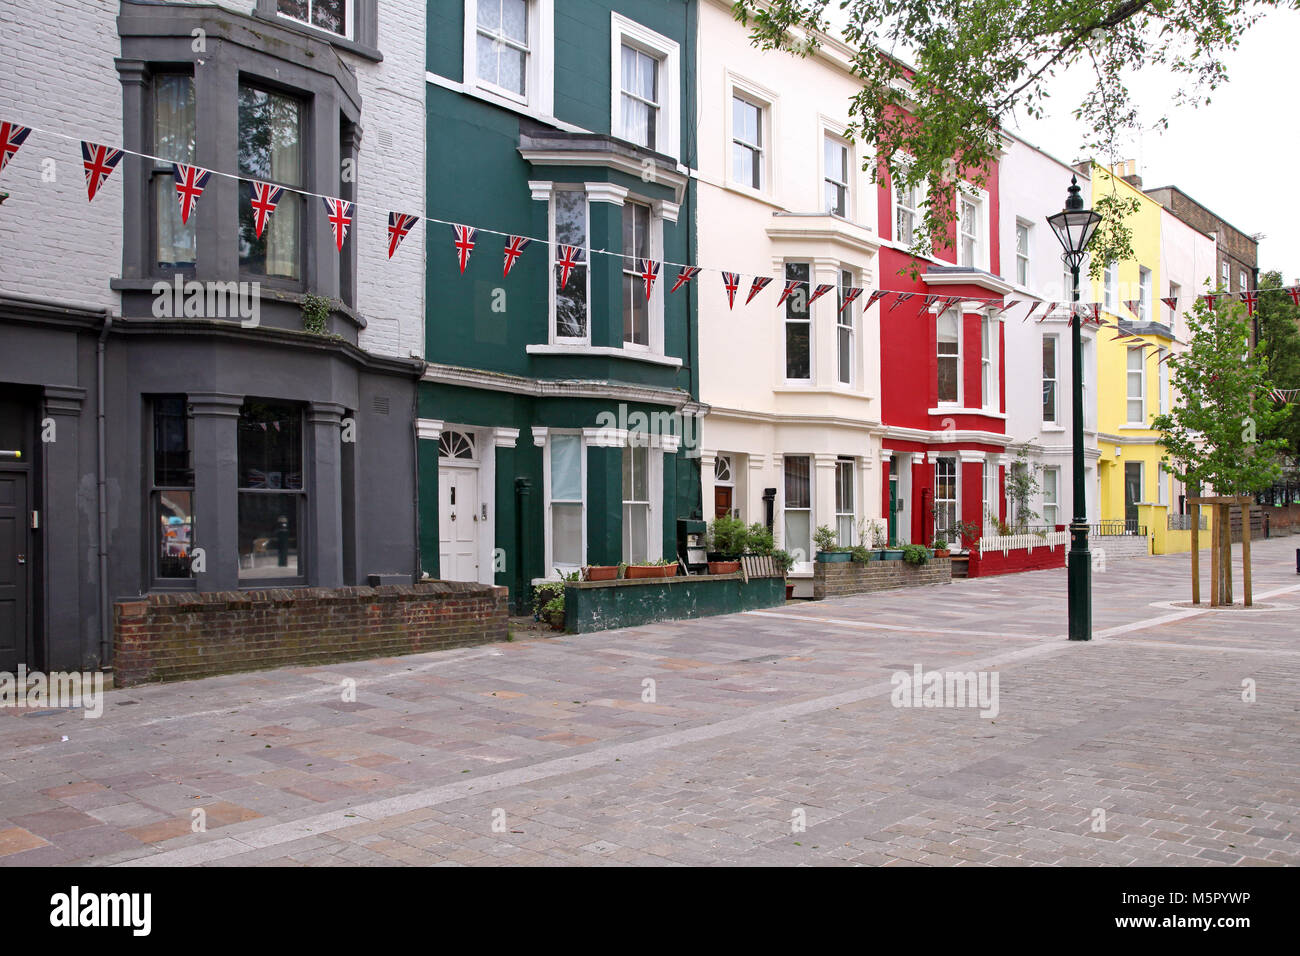 Classic London Architecture With Colorful Buildings And British Flags